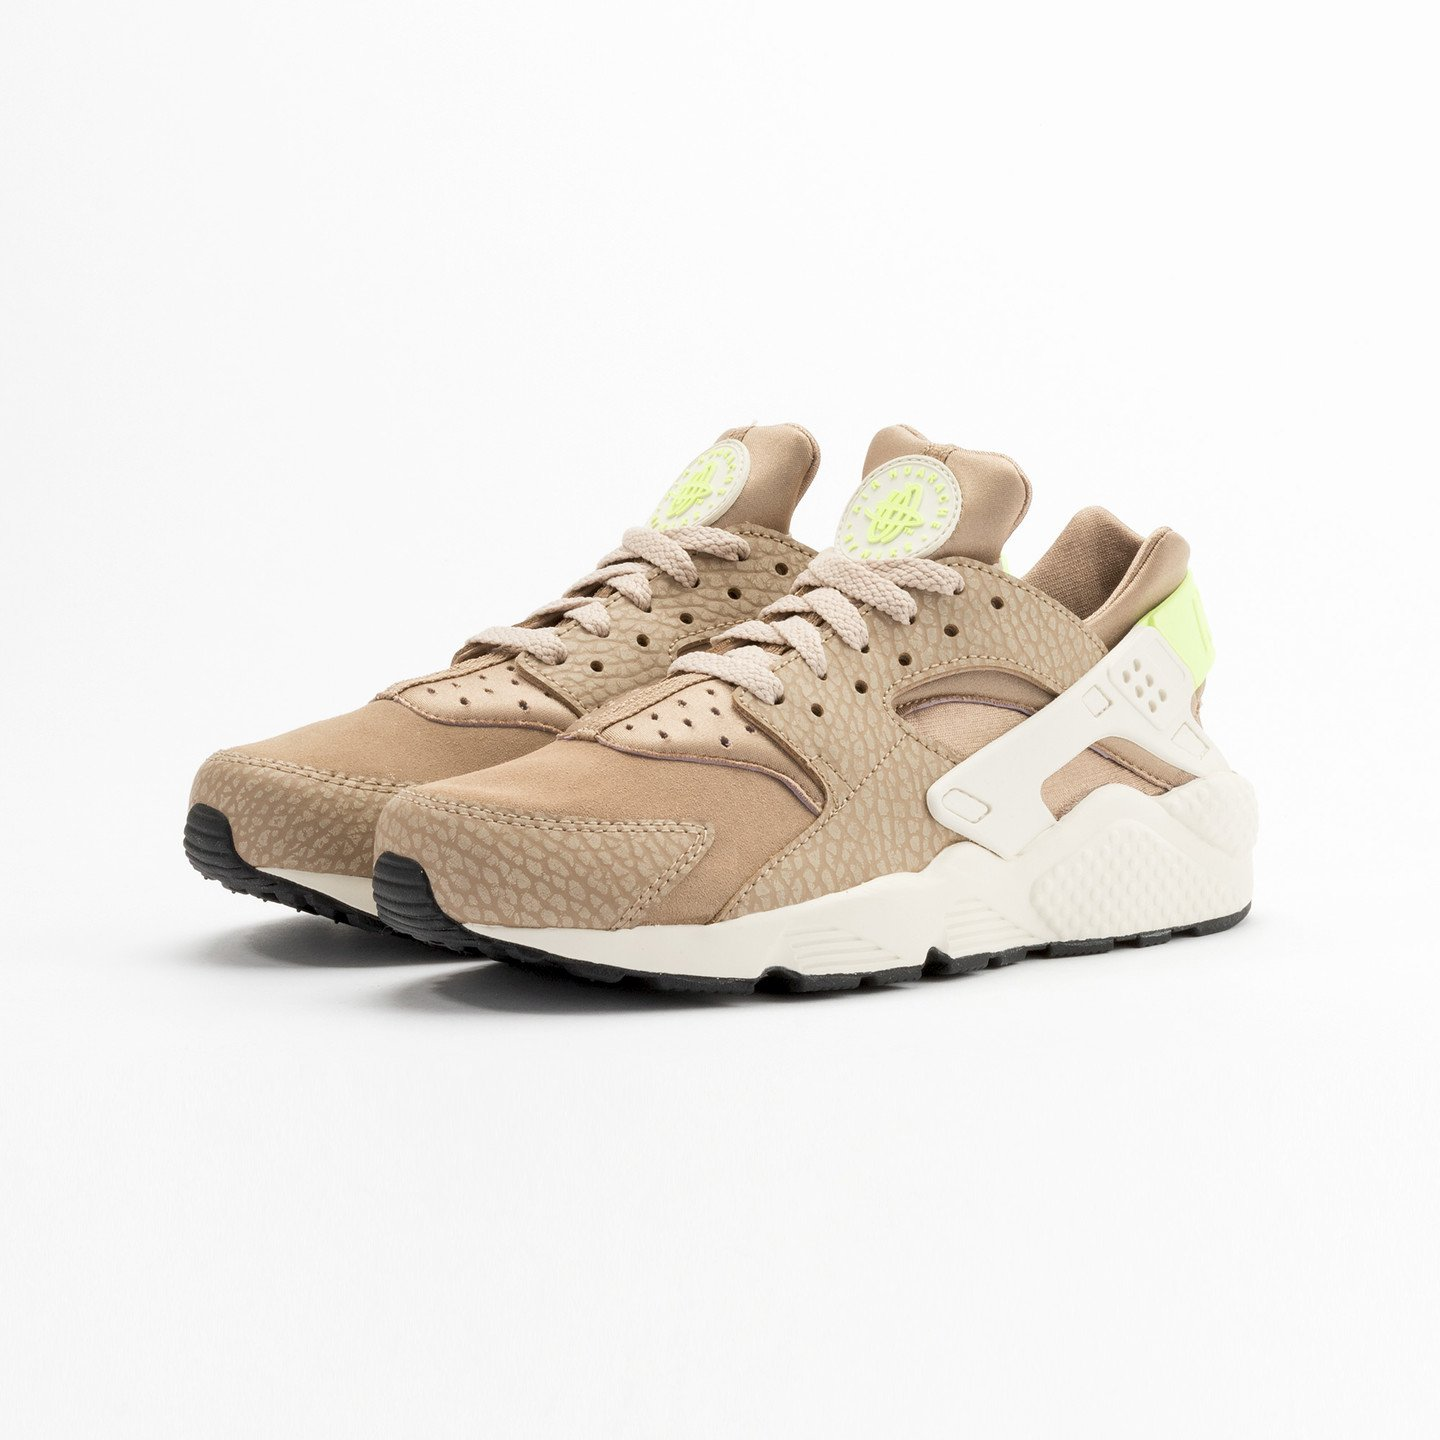 Nike Air Huarache Run Premium Desert Camo / Sea Glass / Ghost Green 704830-203-44.5